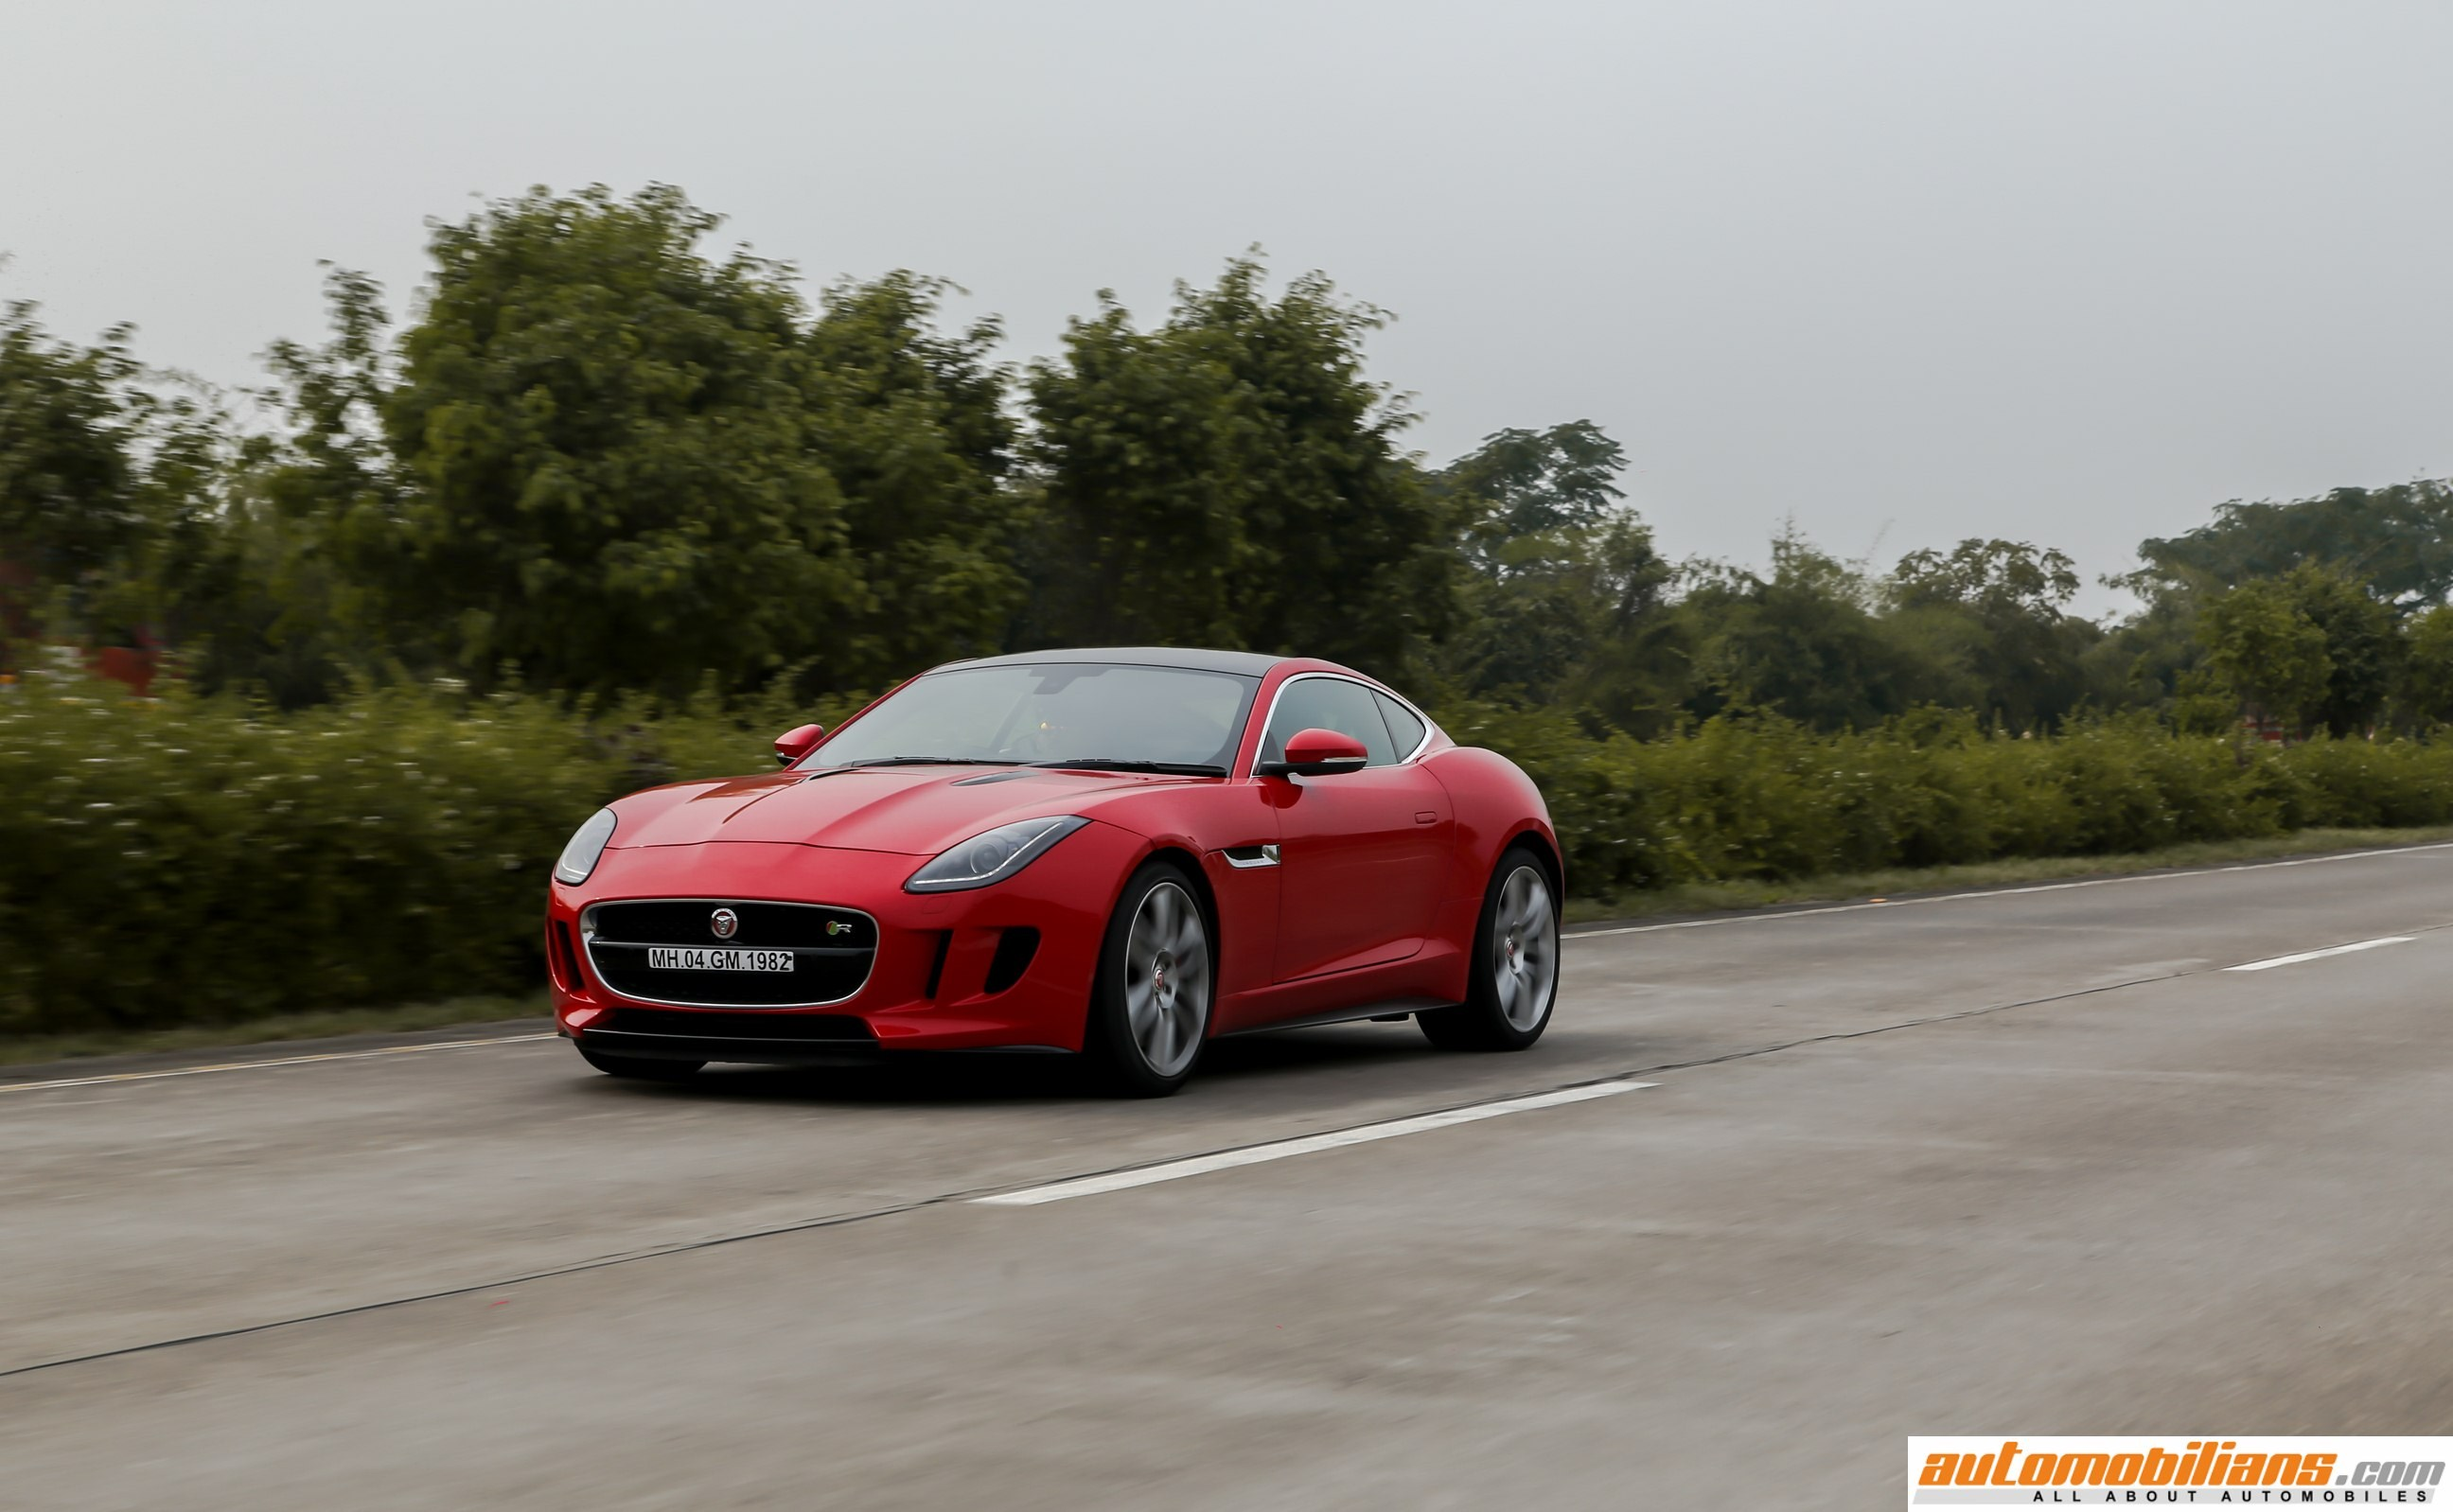 r jaguar storm car review of coupes f type competition and grey the coup bmw clinic super s coupe v battle awd